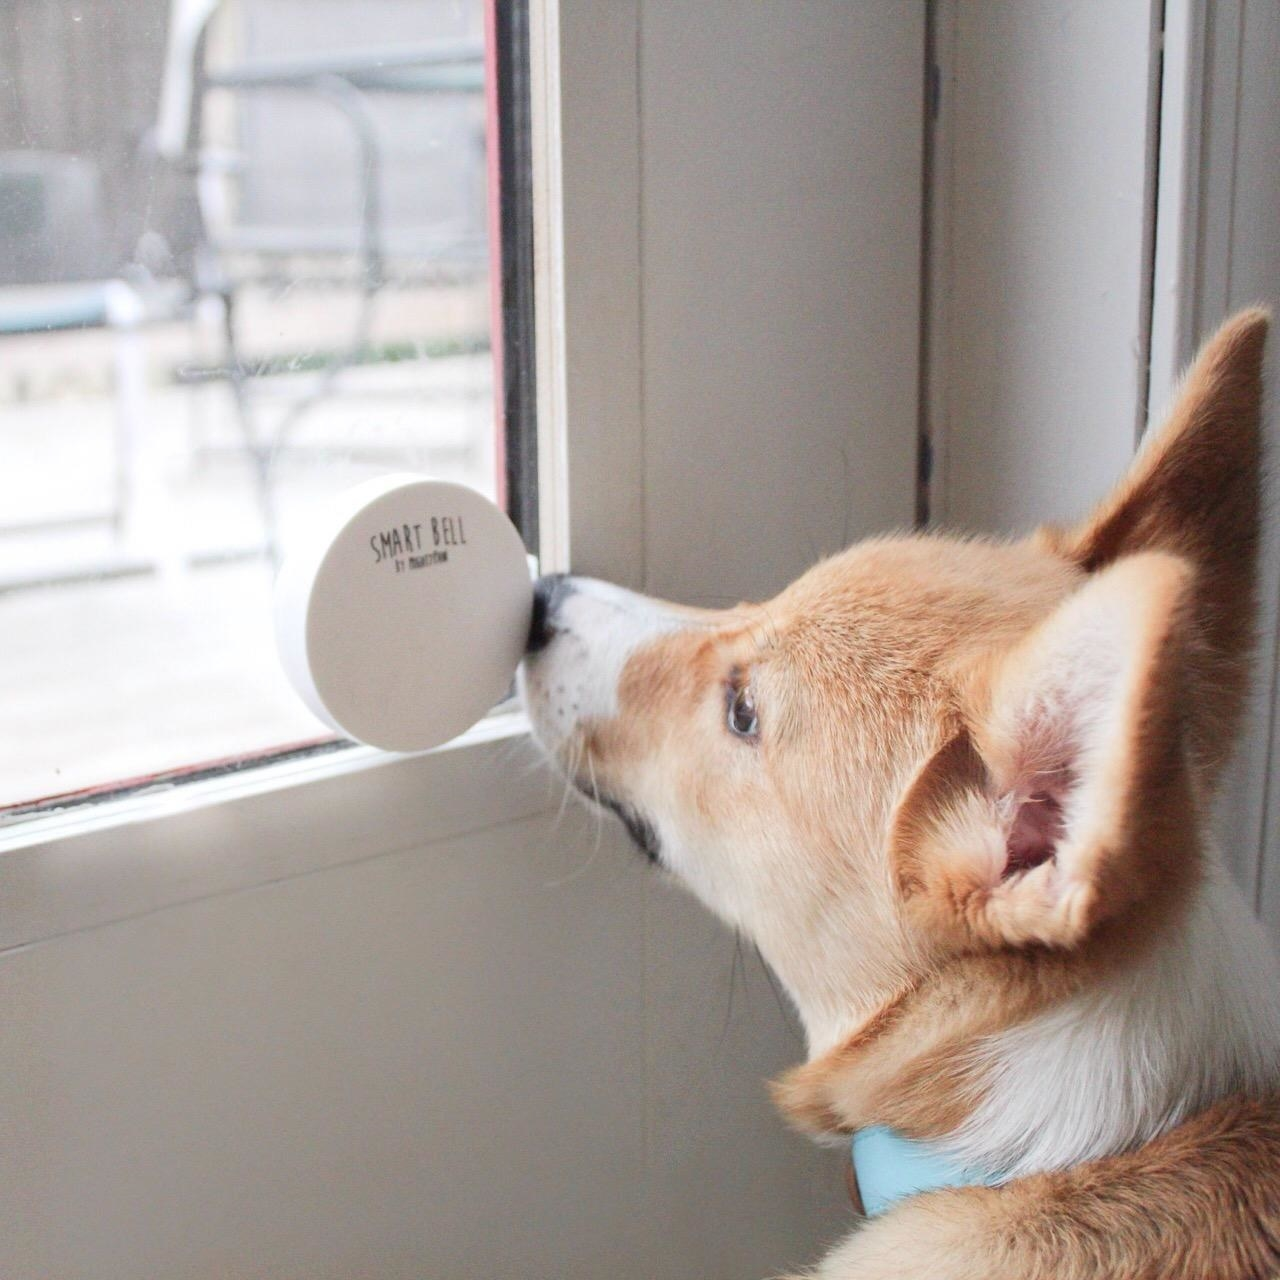 Reviewer's photo showing their dog ringing the white communication doorbell